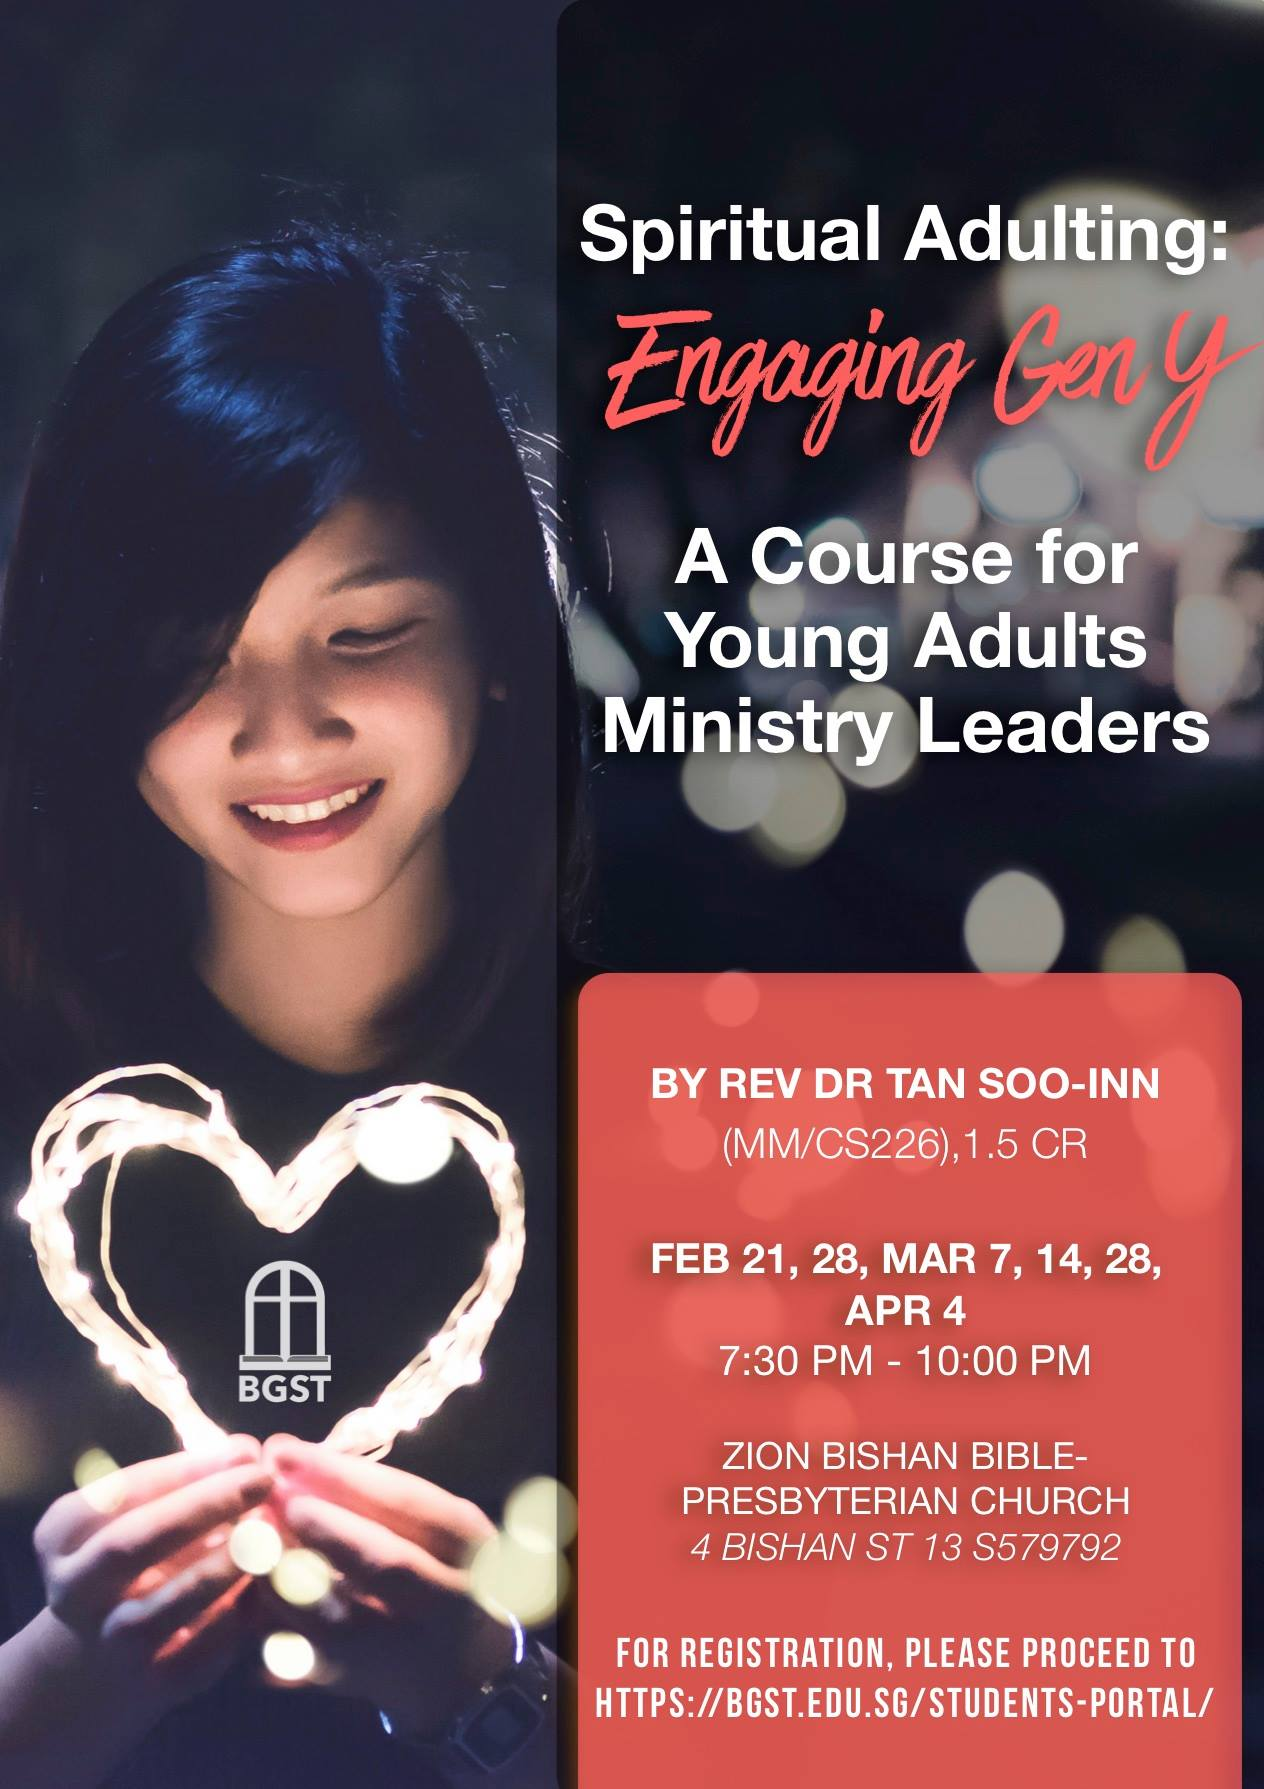 Spiritual Adulting: Engaging Gen Y (BGST Course) @ Zion Bishan Bible–Presbyterian Church